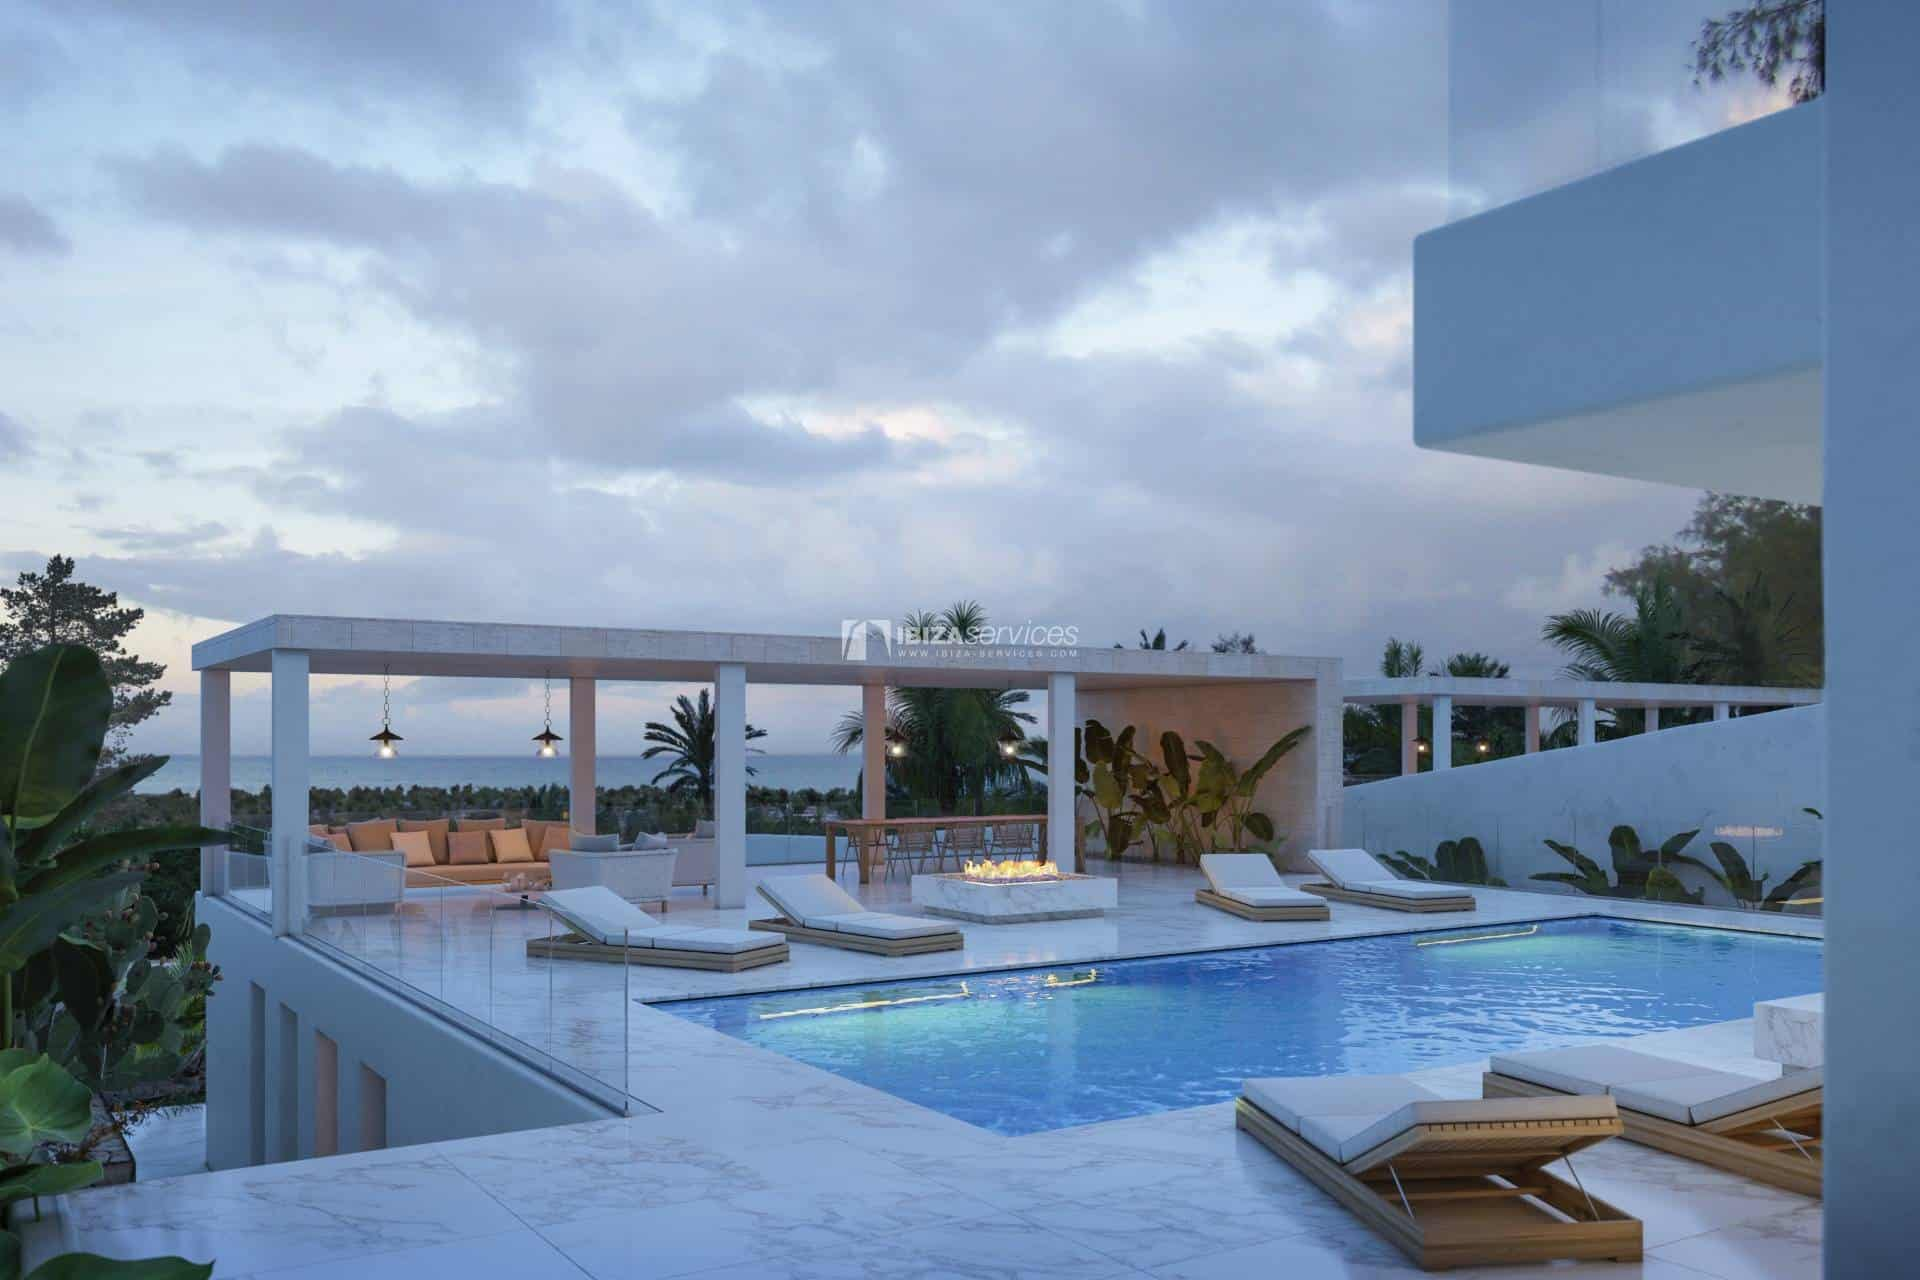 For Sale Cap Martinet Talamanca urban land with project perspectiva 2